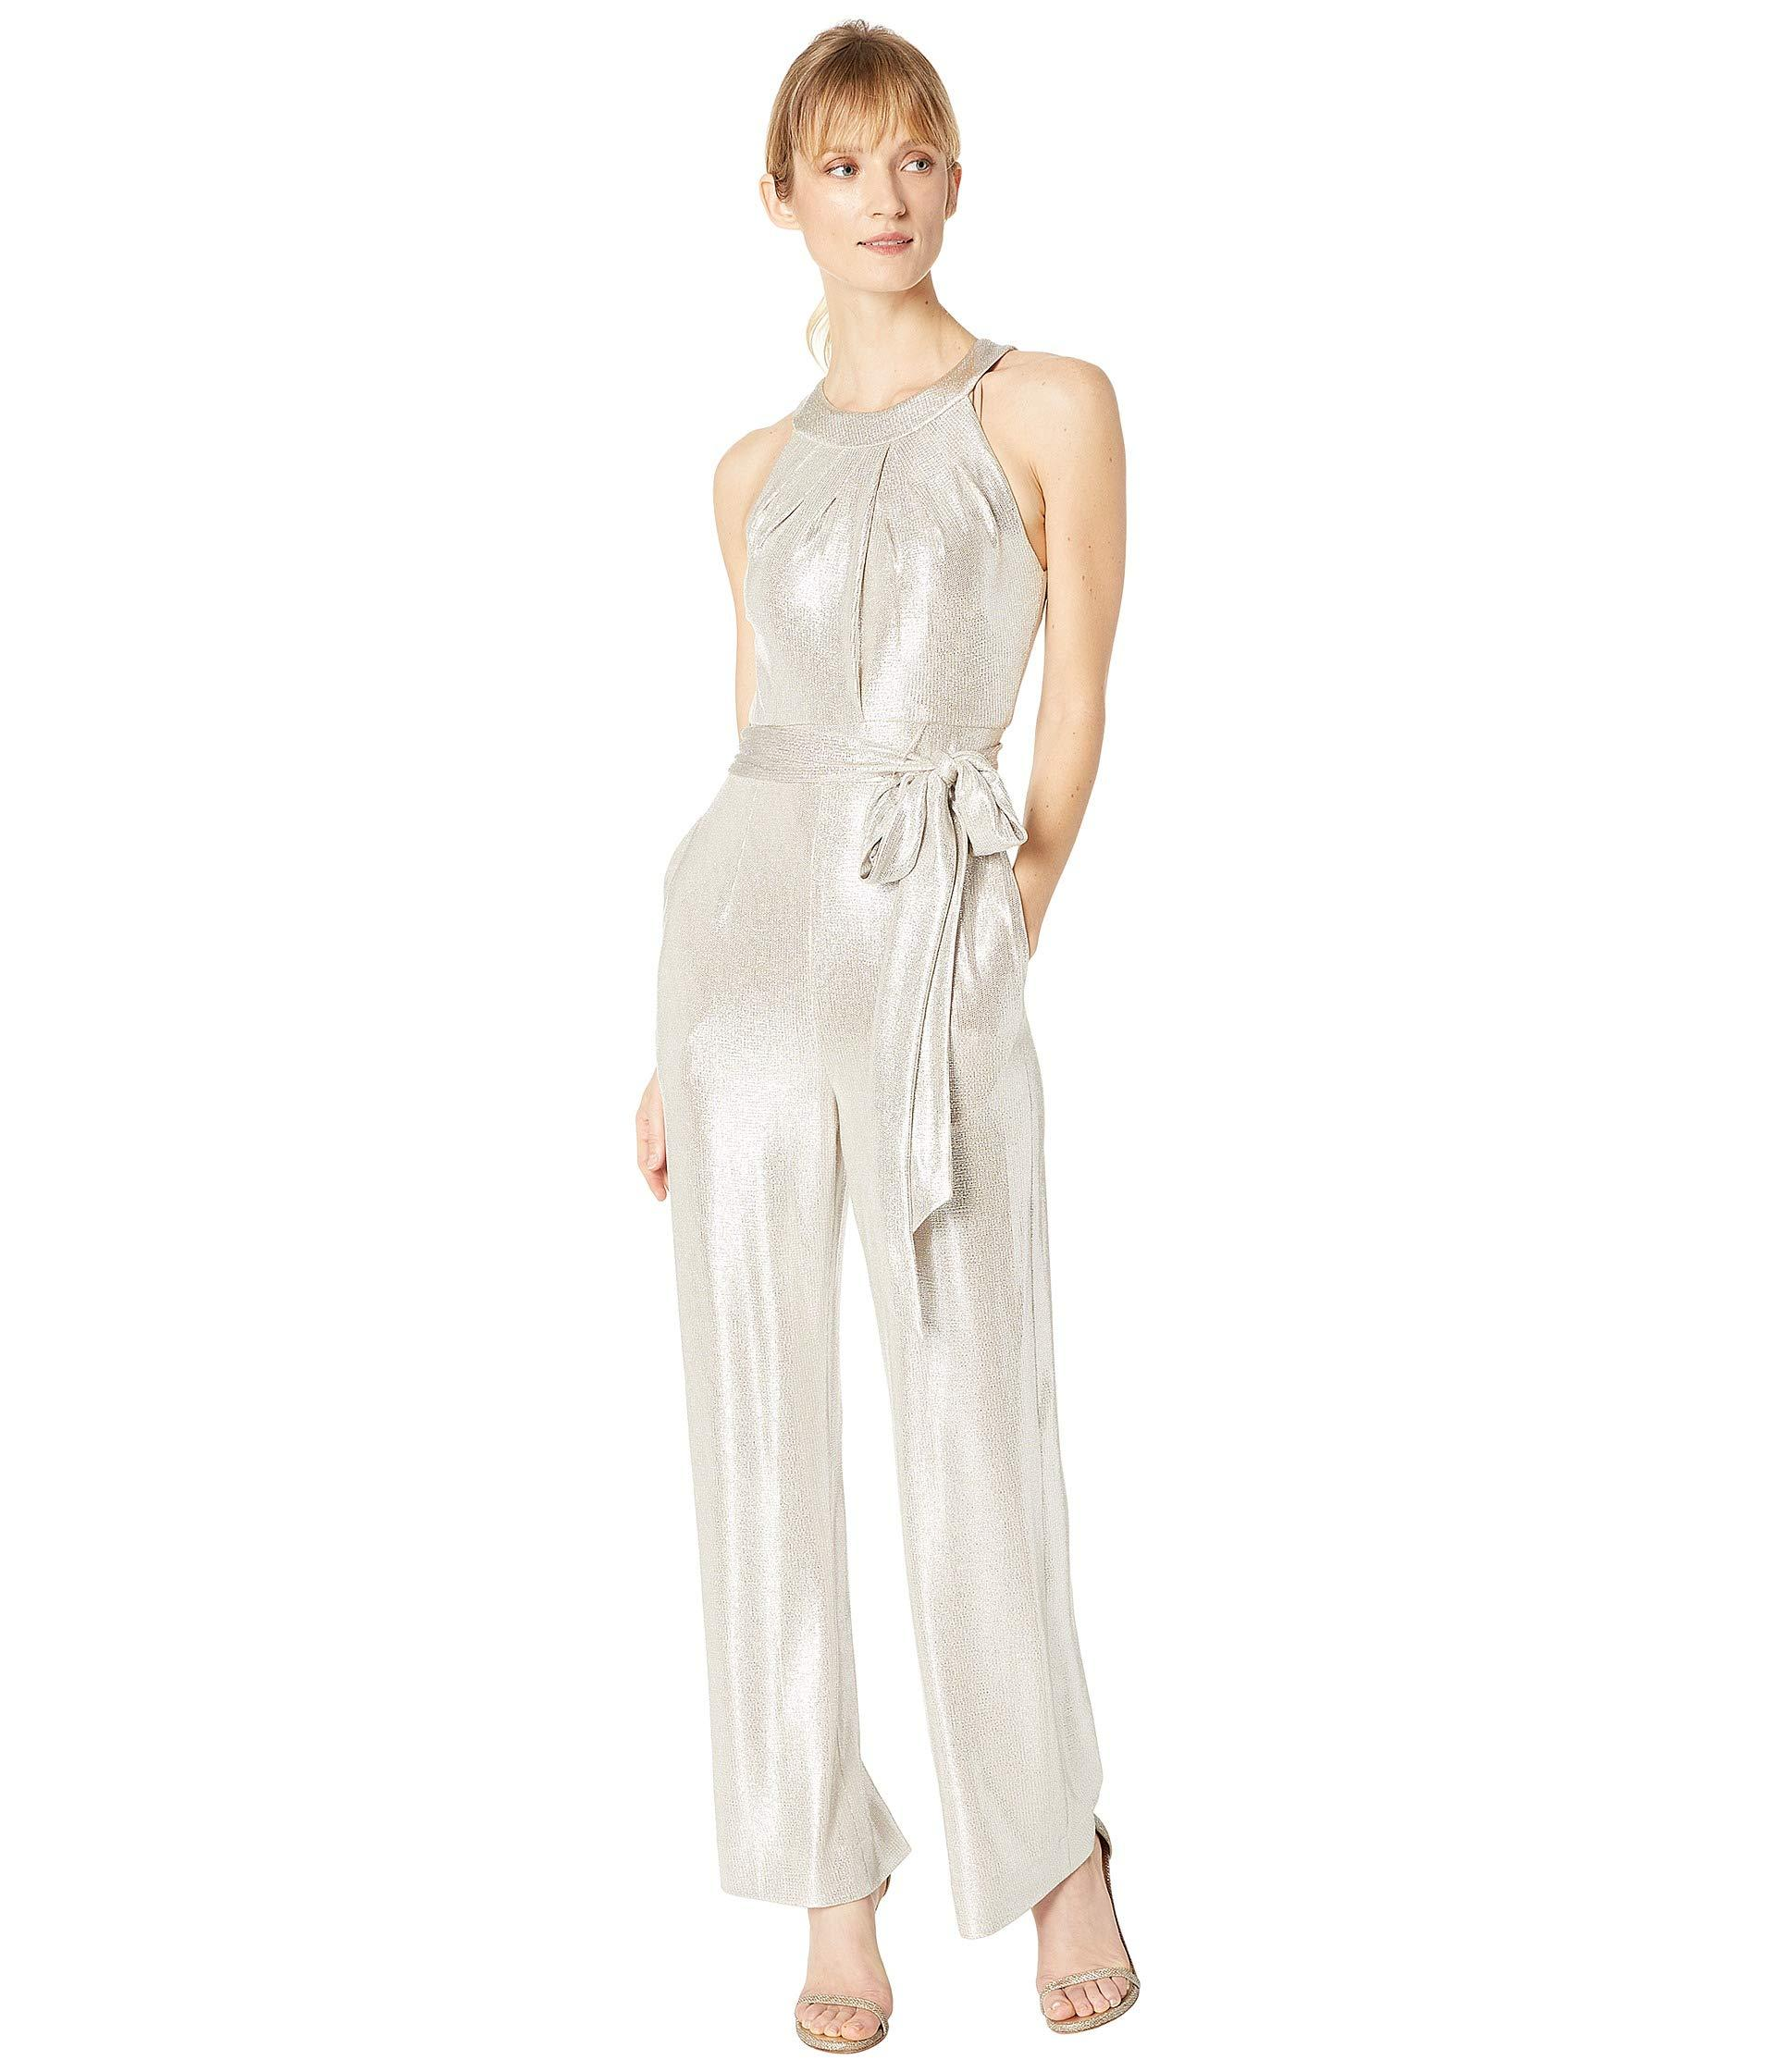 a69de20ca48 Lyst - Tahari Sleeveless Foil Knit Jumpsuit in White - Save 34%